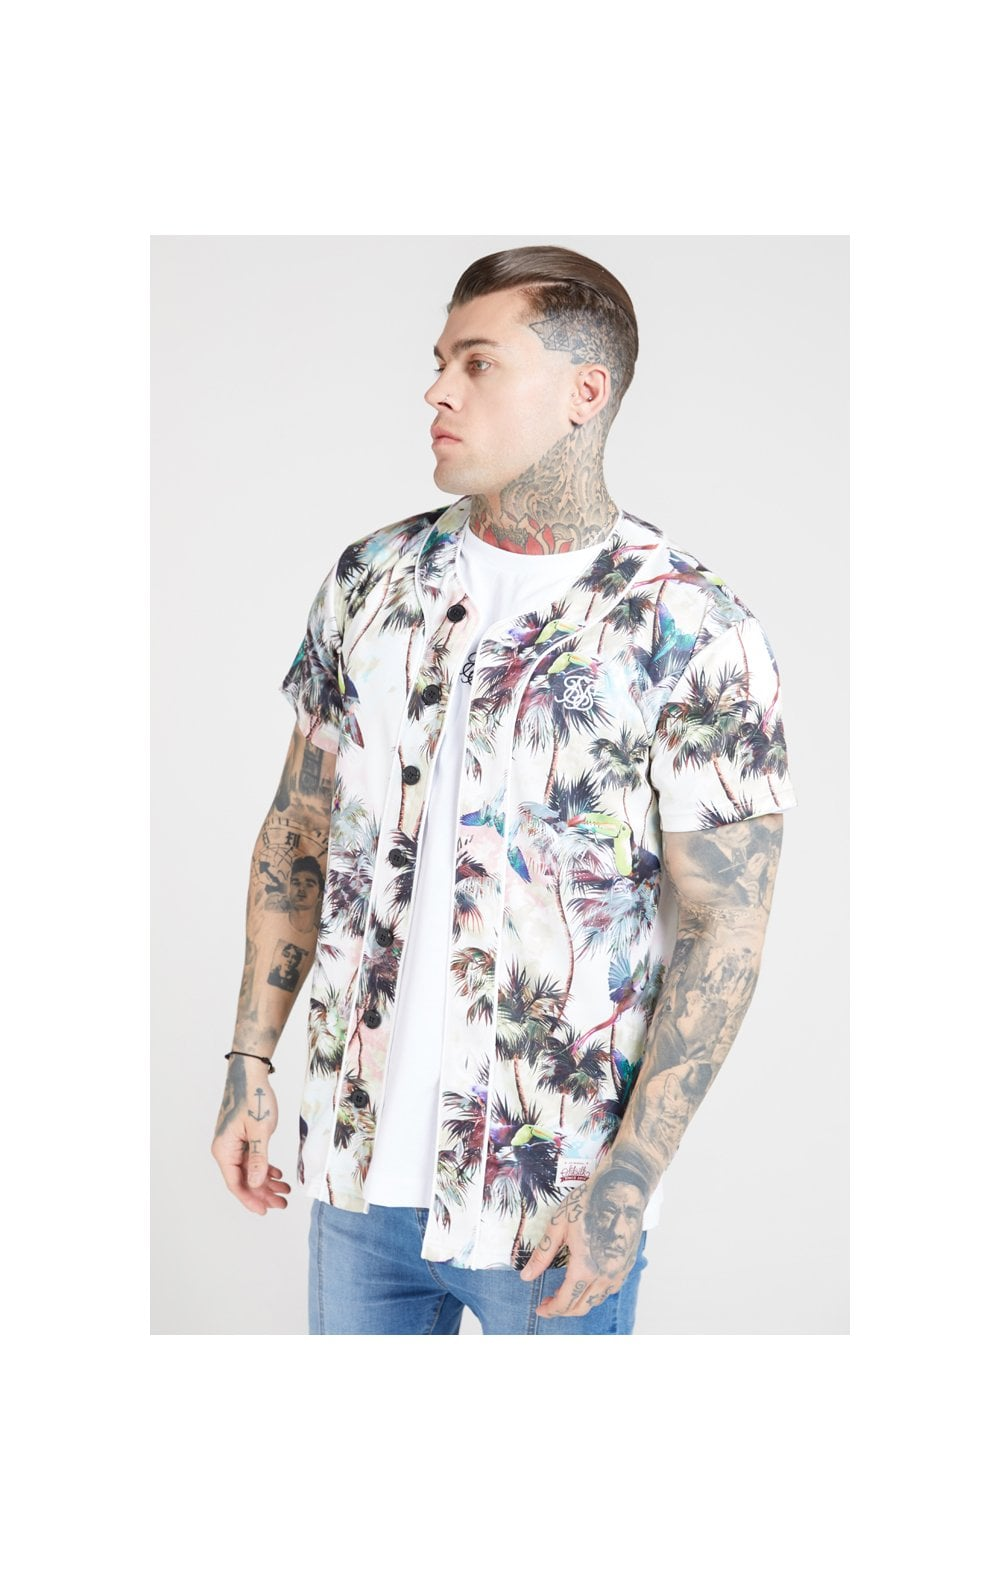 SikSilk Original Baseball Jersey – Beige & Black